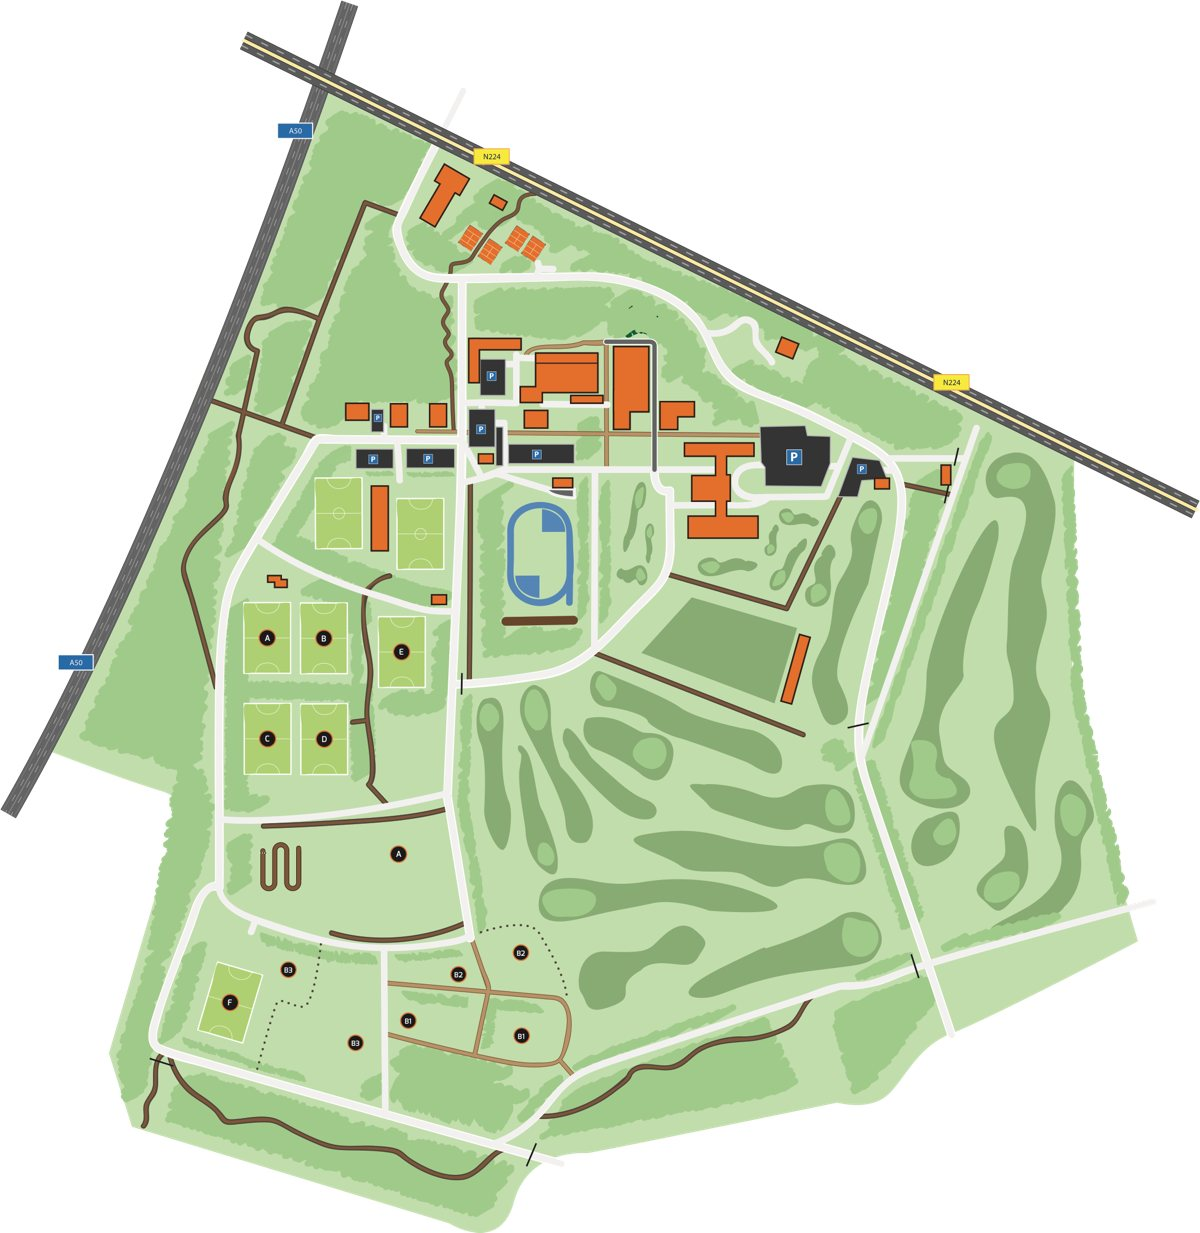 Plattegrond Papendal